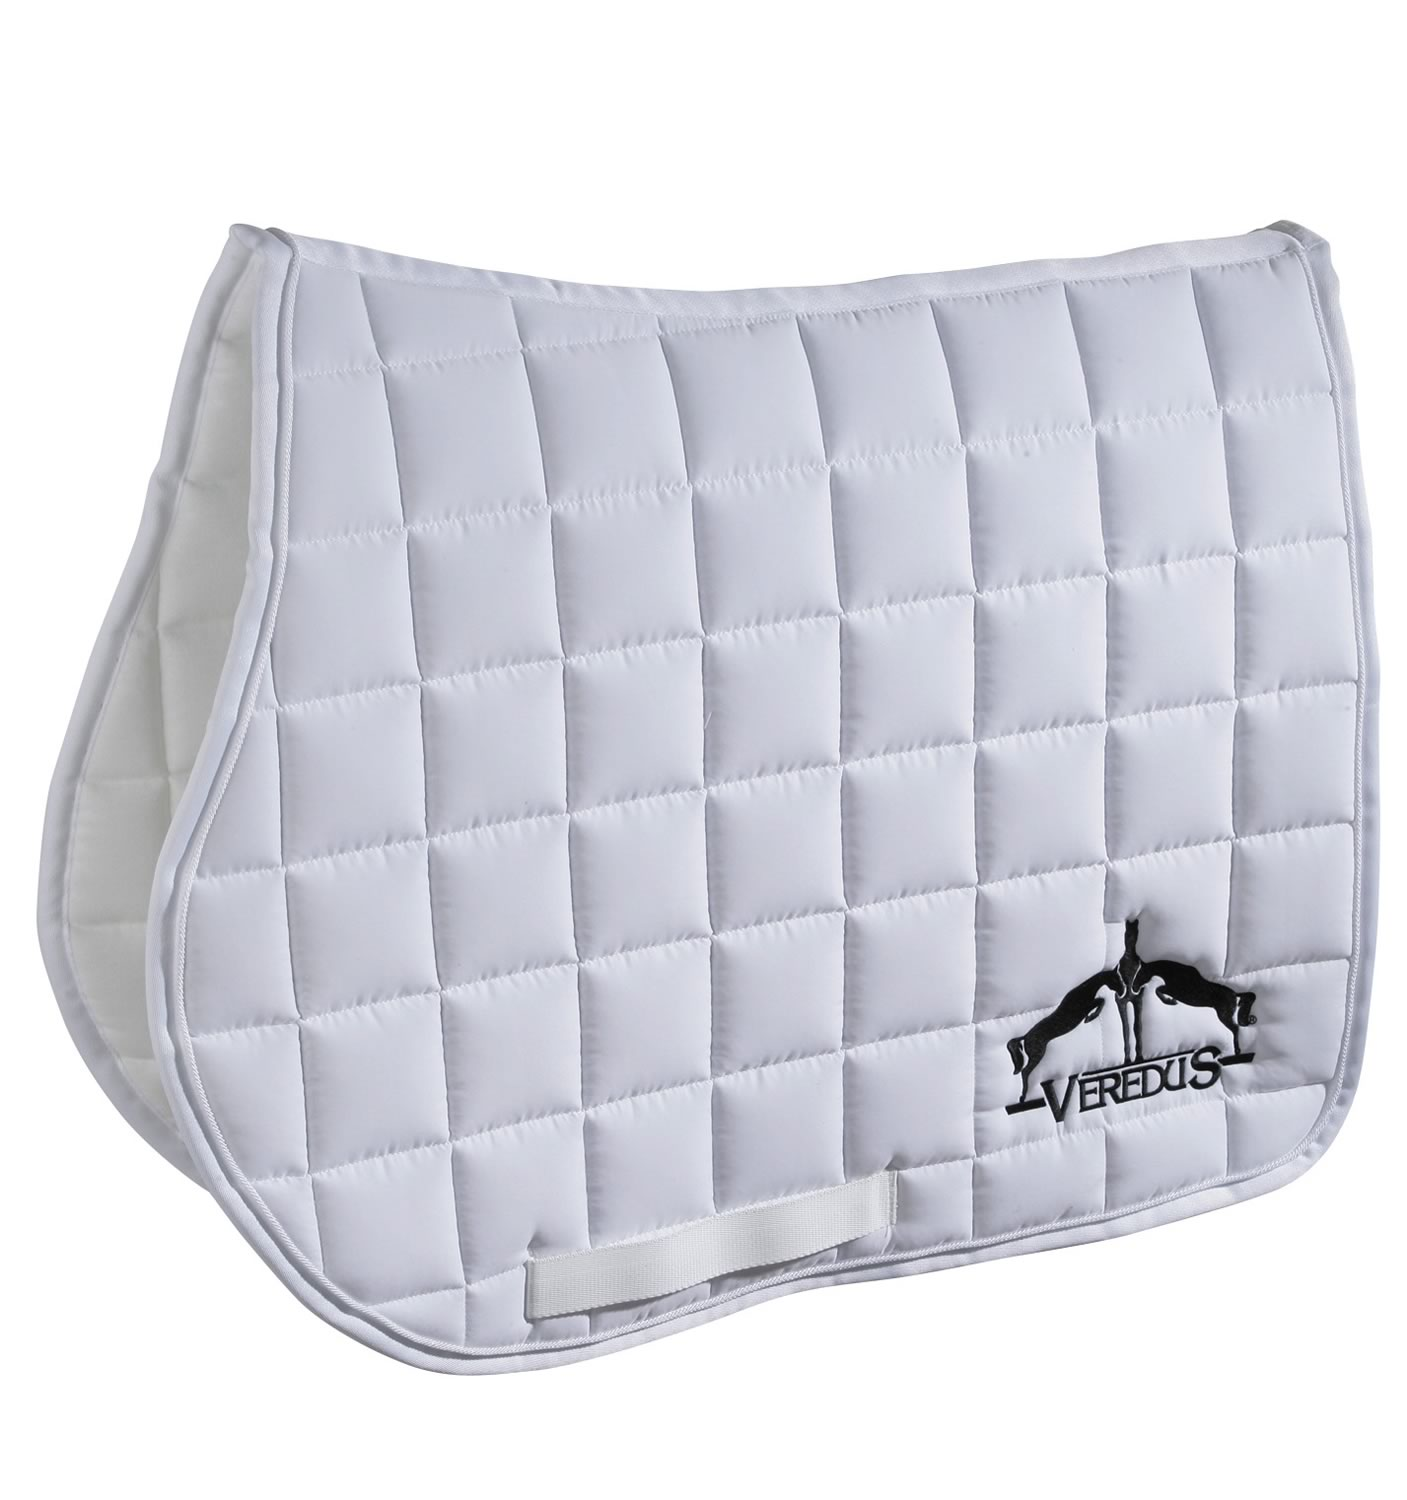 Veredus Dressage Saddlecloth